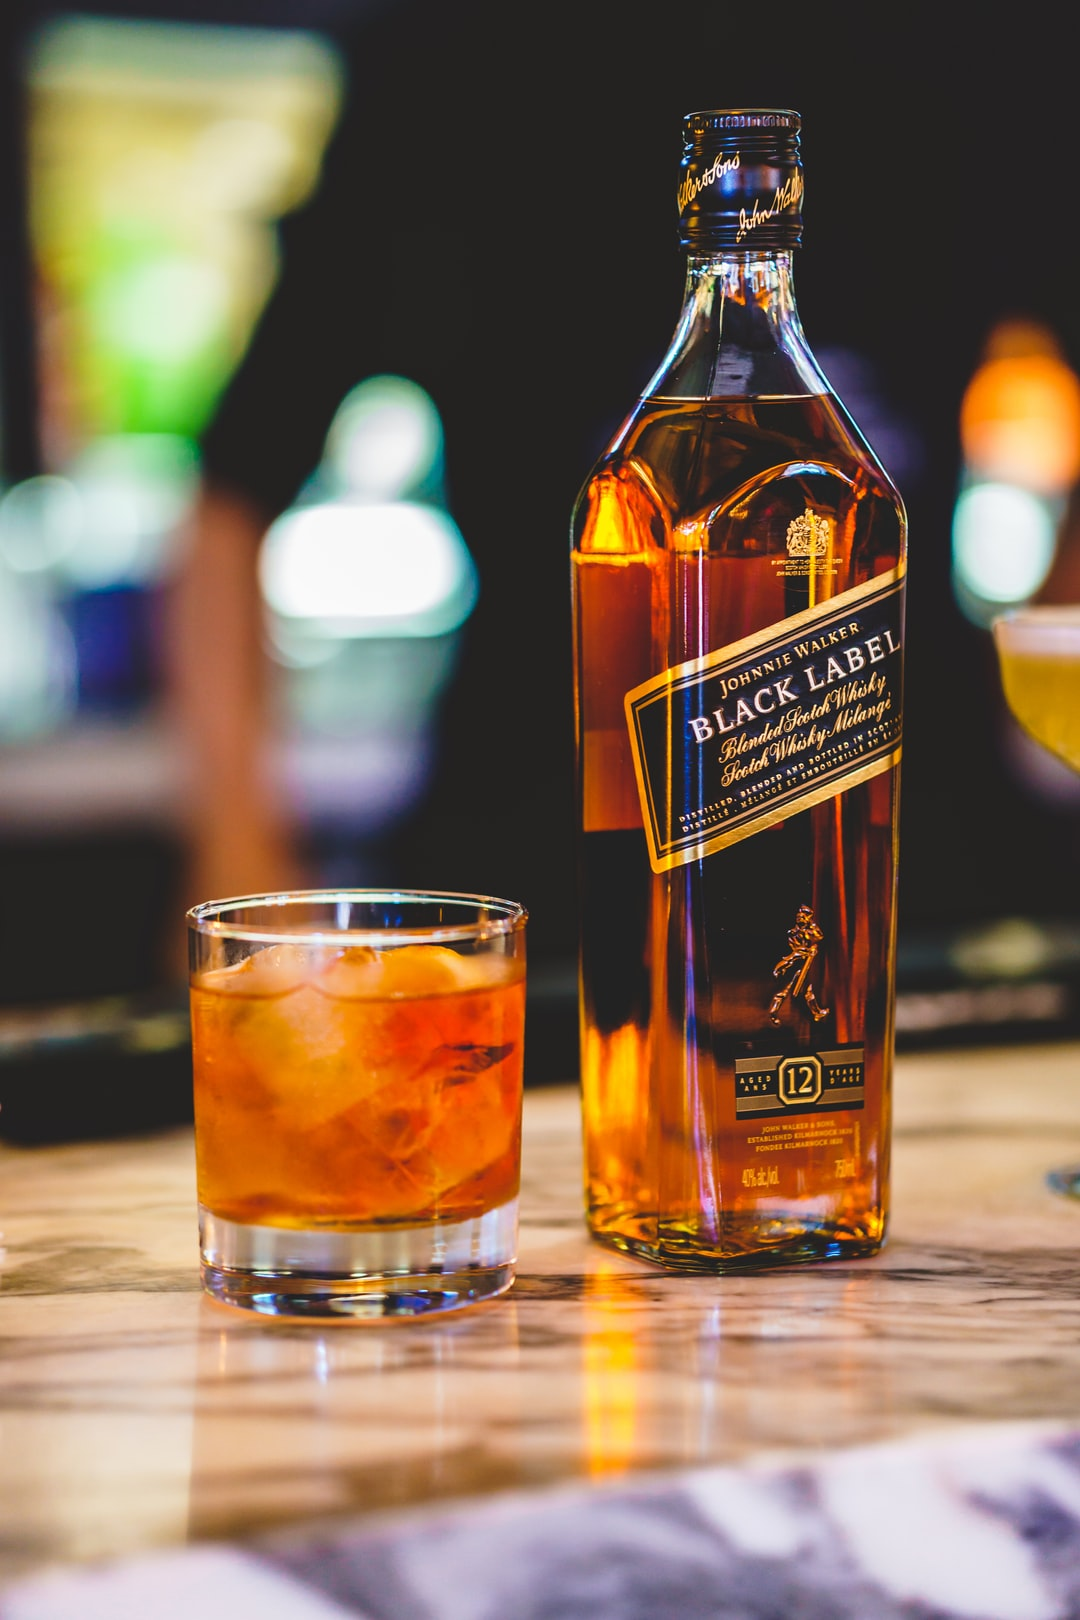 Johnnie Walker Pictures | Download Free Images & Stock Photos on ...